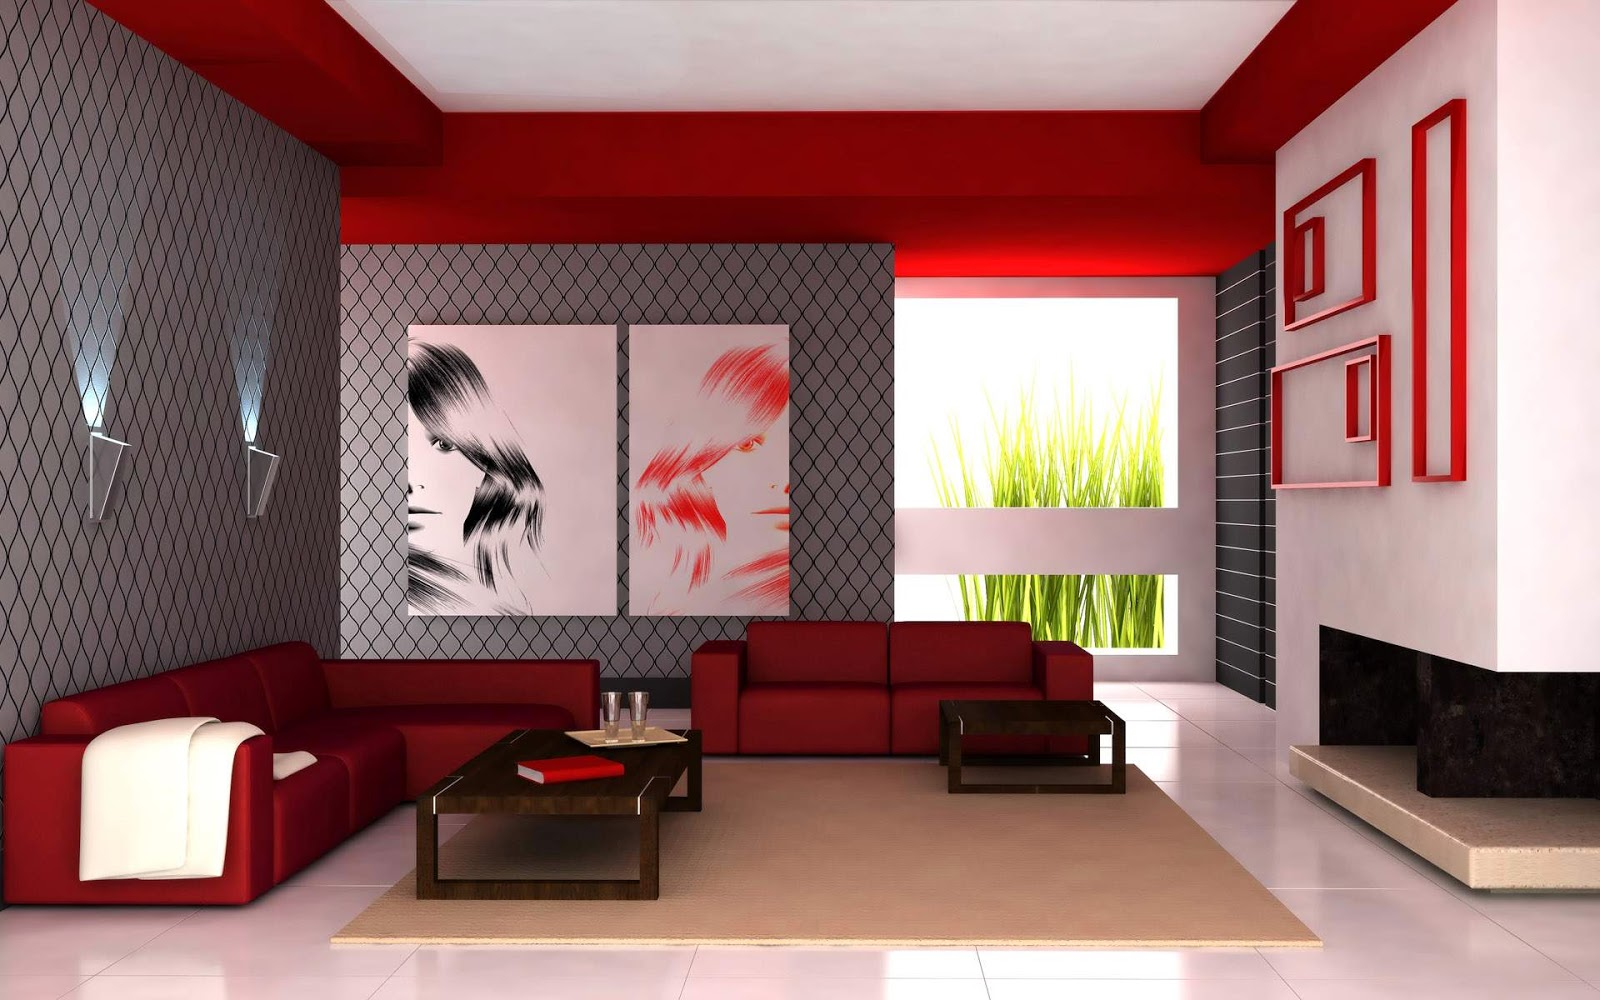 Amazing Beautiful Furniture For Drawing Room Designs ideas 2014 2015 Free  Download. Dynamic Views  Amazing Beautiful Furniture For Drawing Room